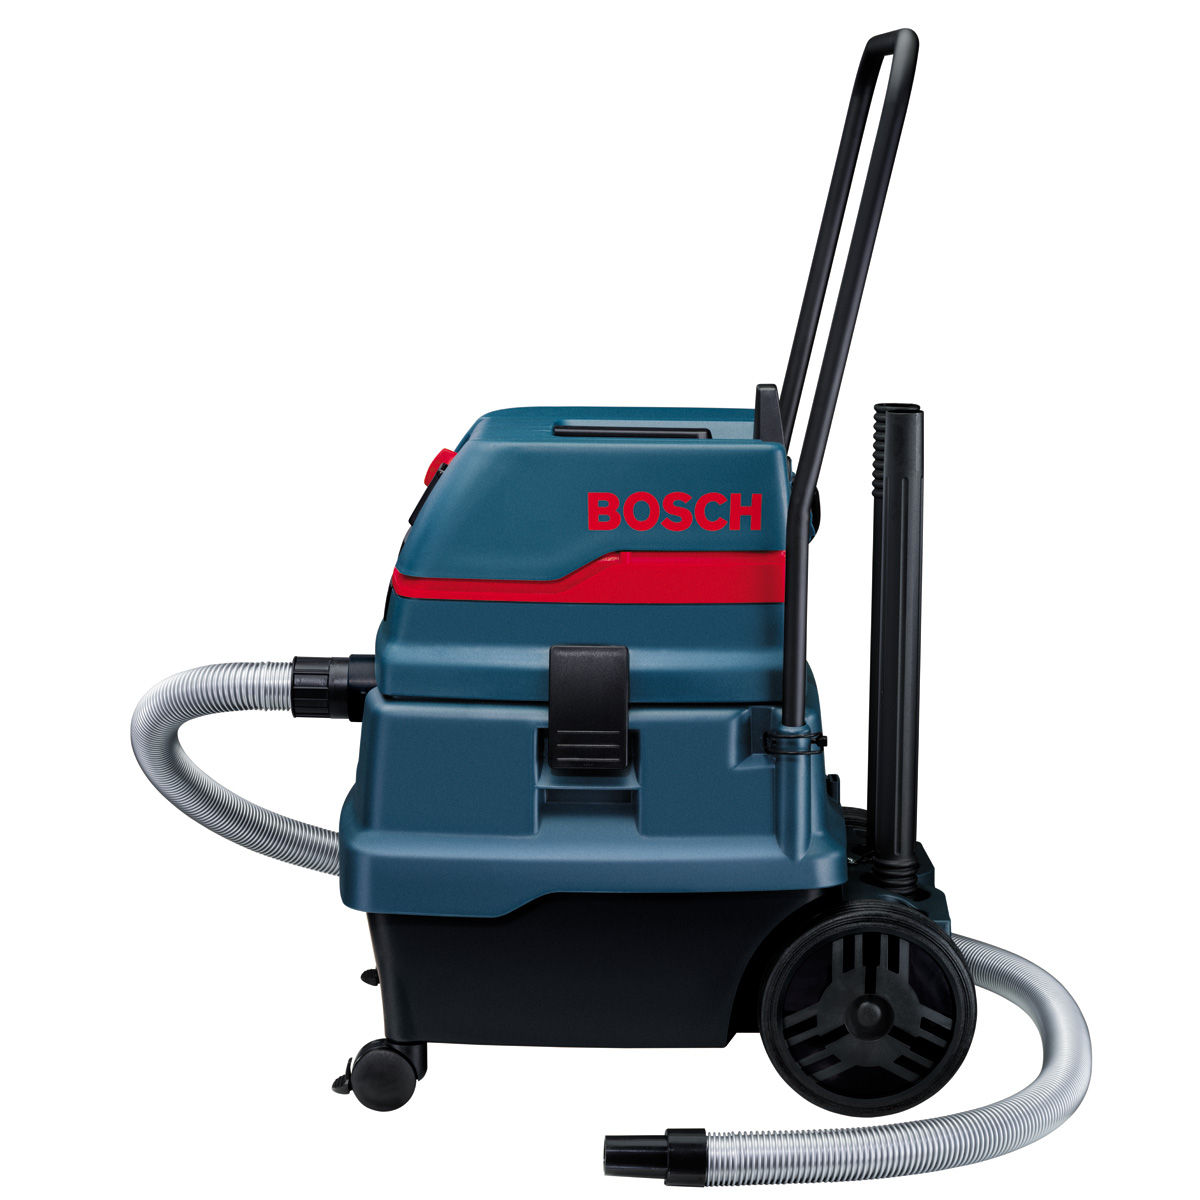 Toolstop Bosch Gas50 Wet And Dry Universal Dust Extractor